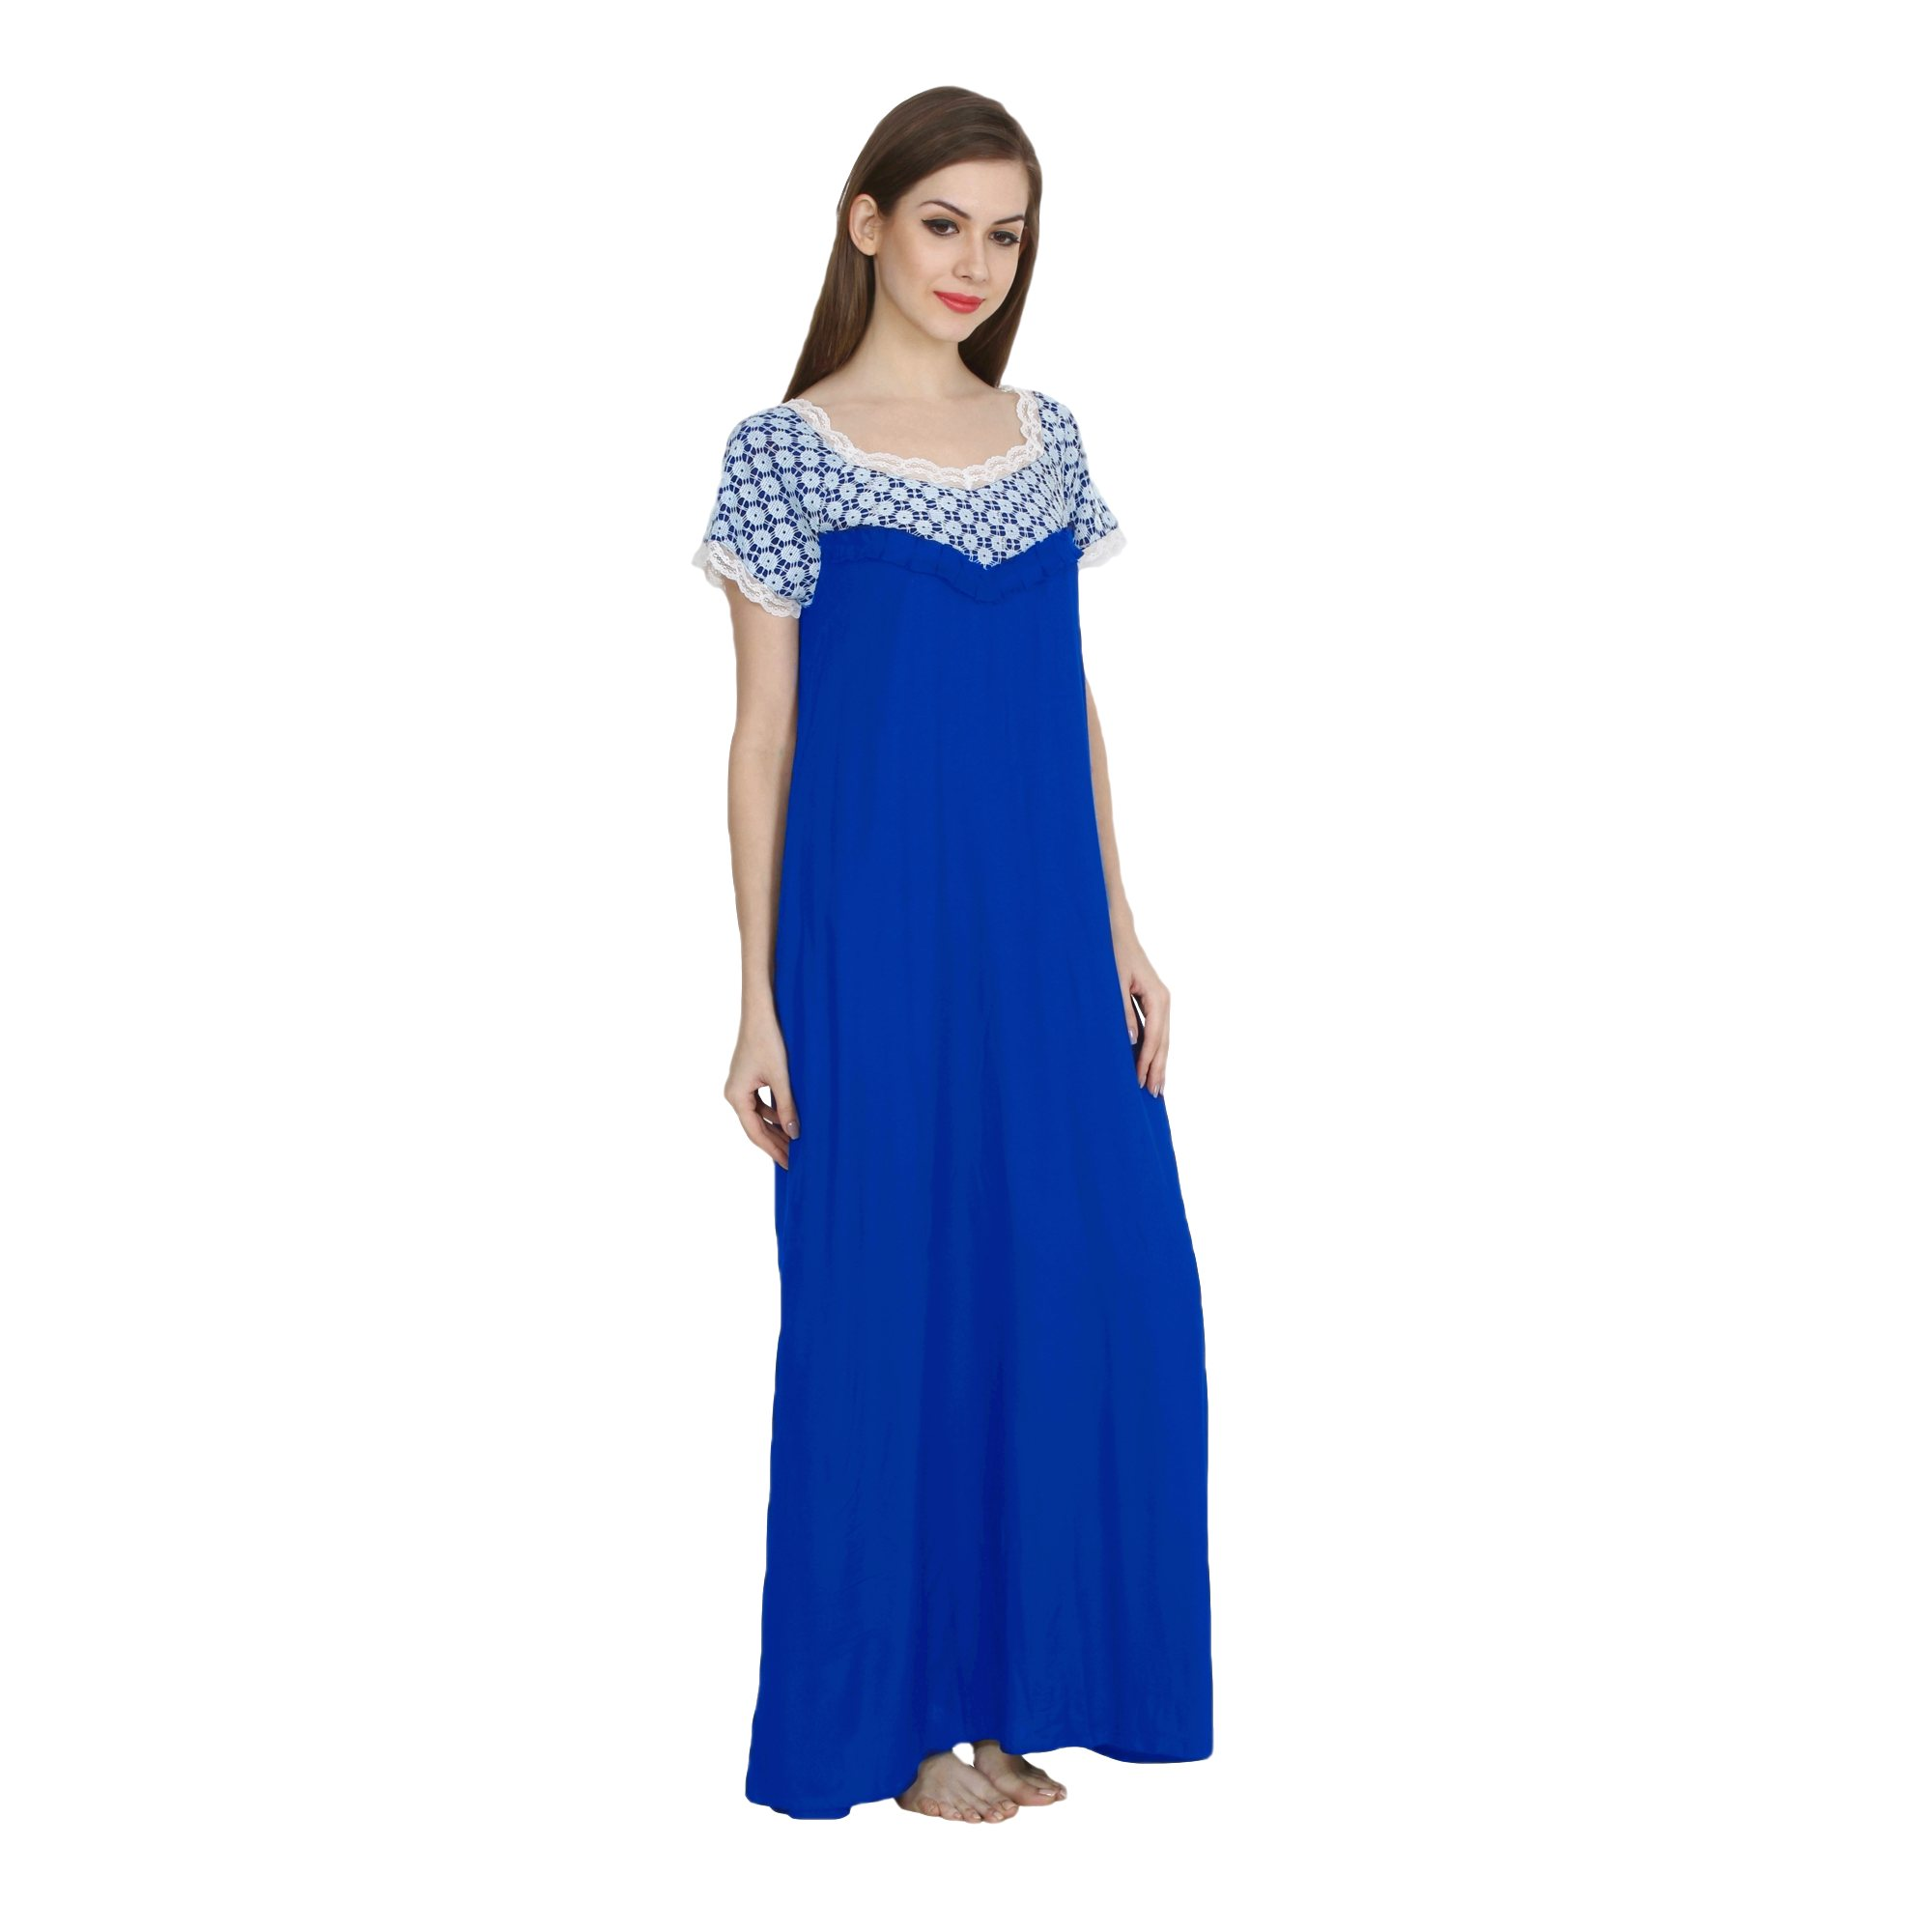 Embellished Bodice Maxi Night-Gown Nighty in Turquoise Blue